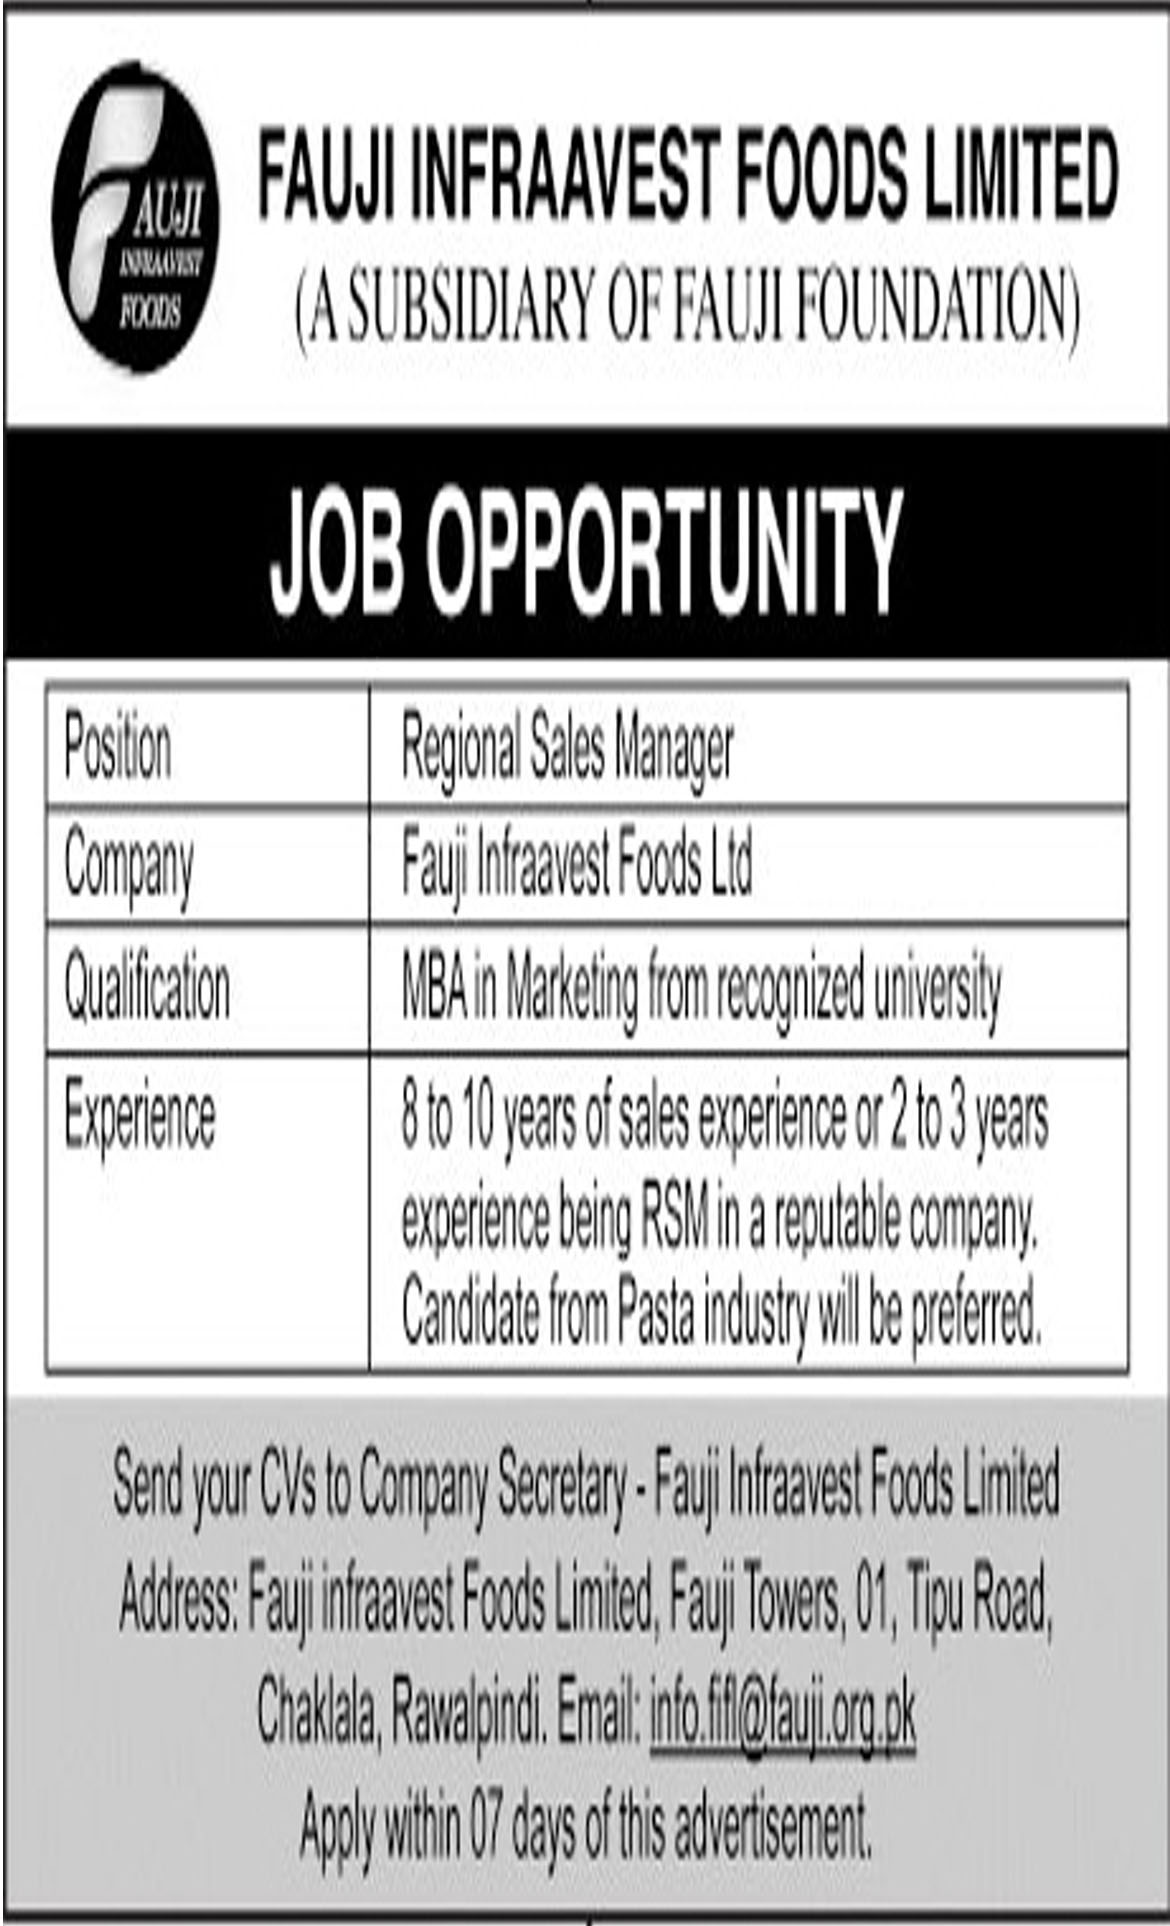 Jobs In Fauji Infraavest Foods Limited 04 Oct 2018